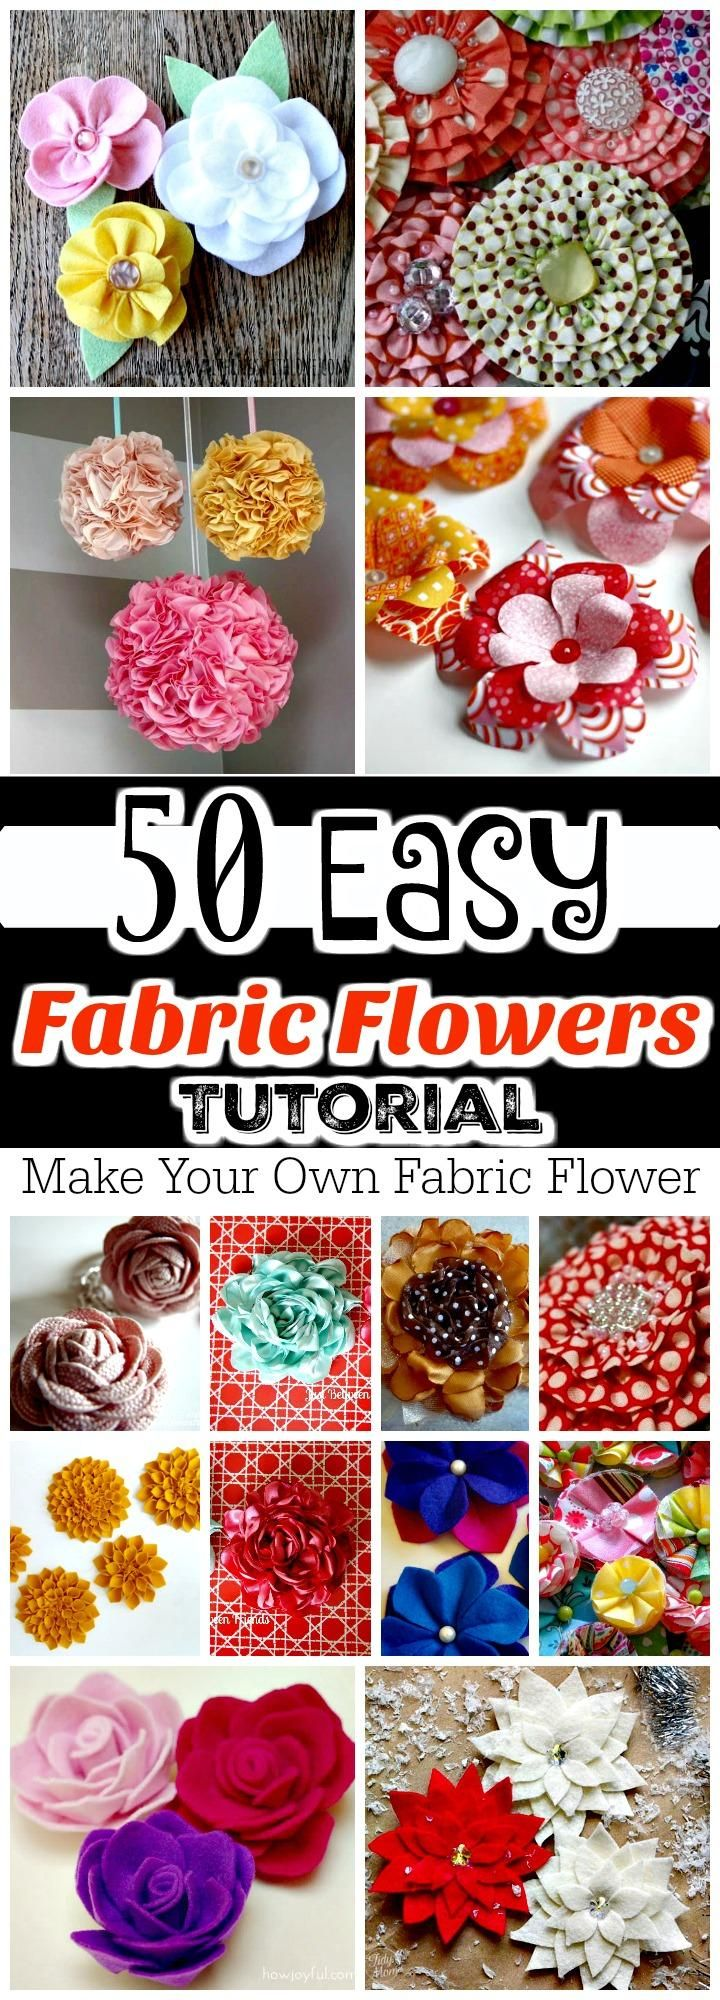 The 25 best fabric flowers ideas on pinterest diy clothes japan 50 easy fabric flowers tutorial make your own fabric flowers reviewsmspy